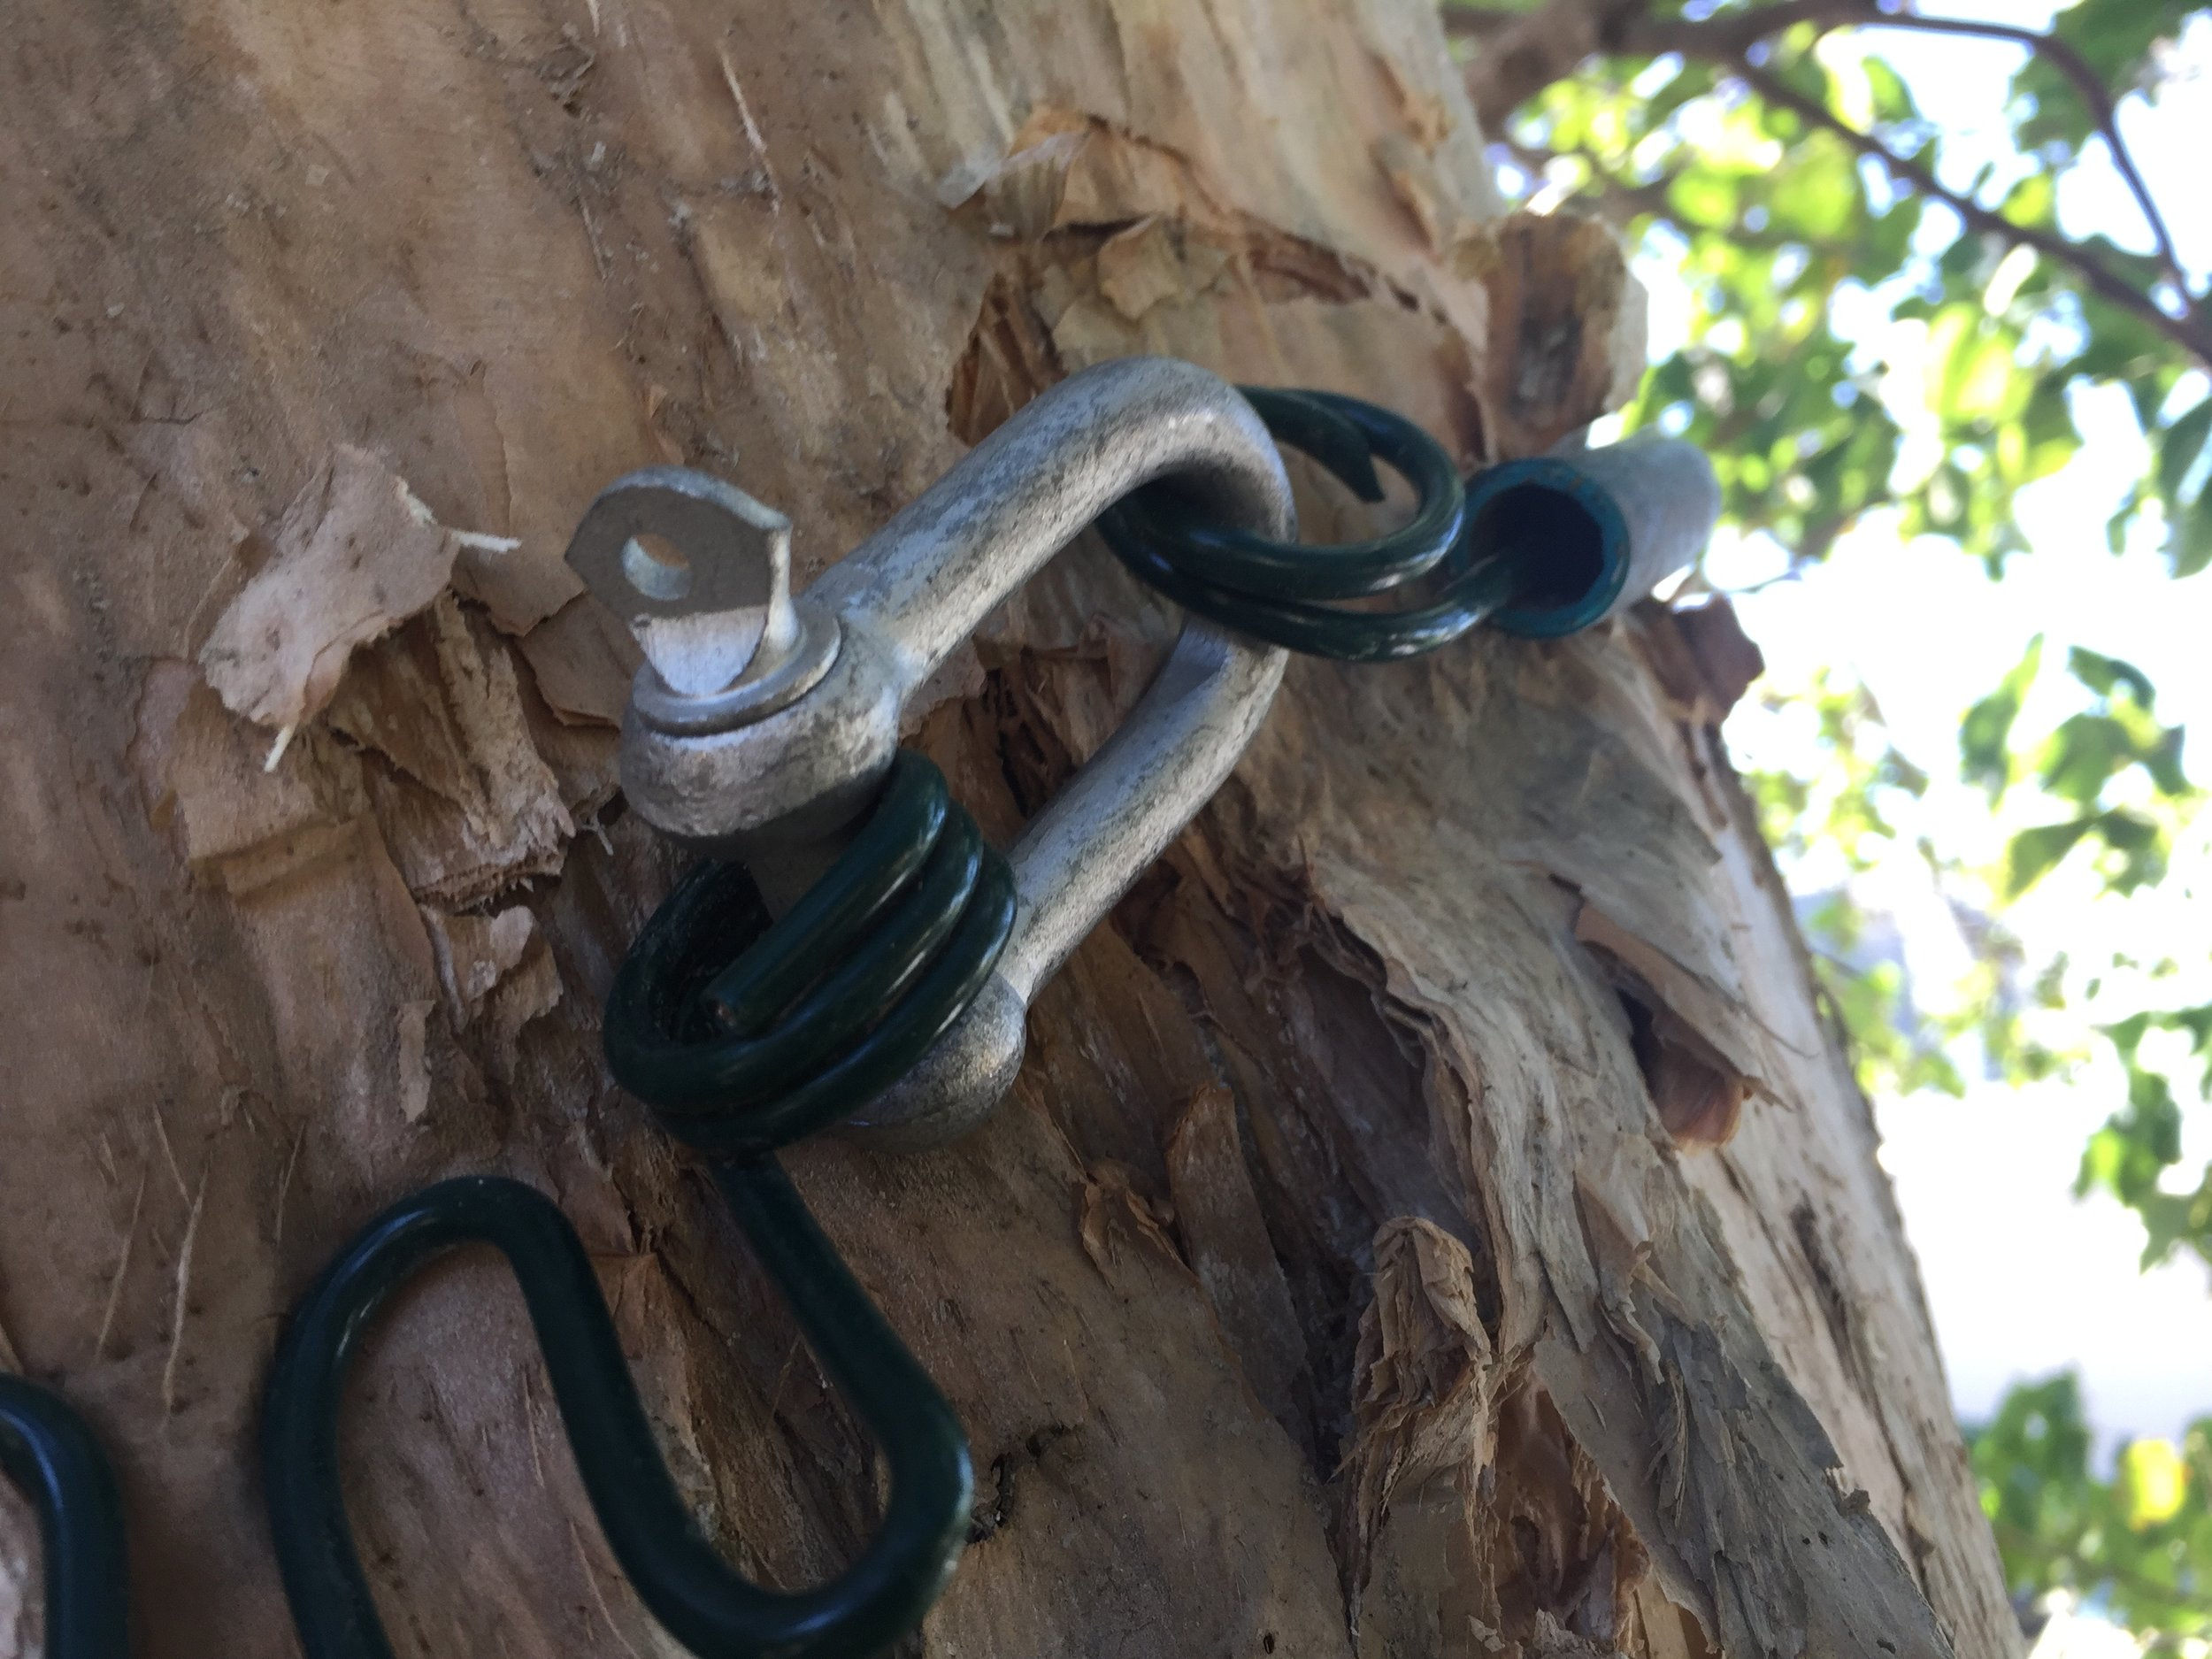 A D-shackle makes for easier removal and return of the nesting box.